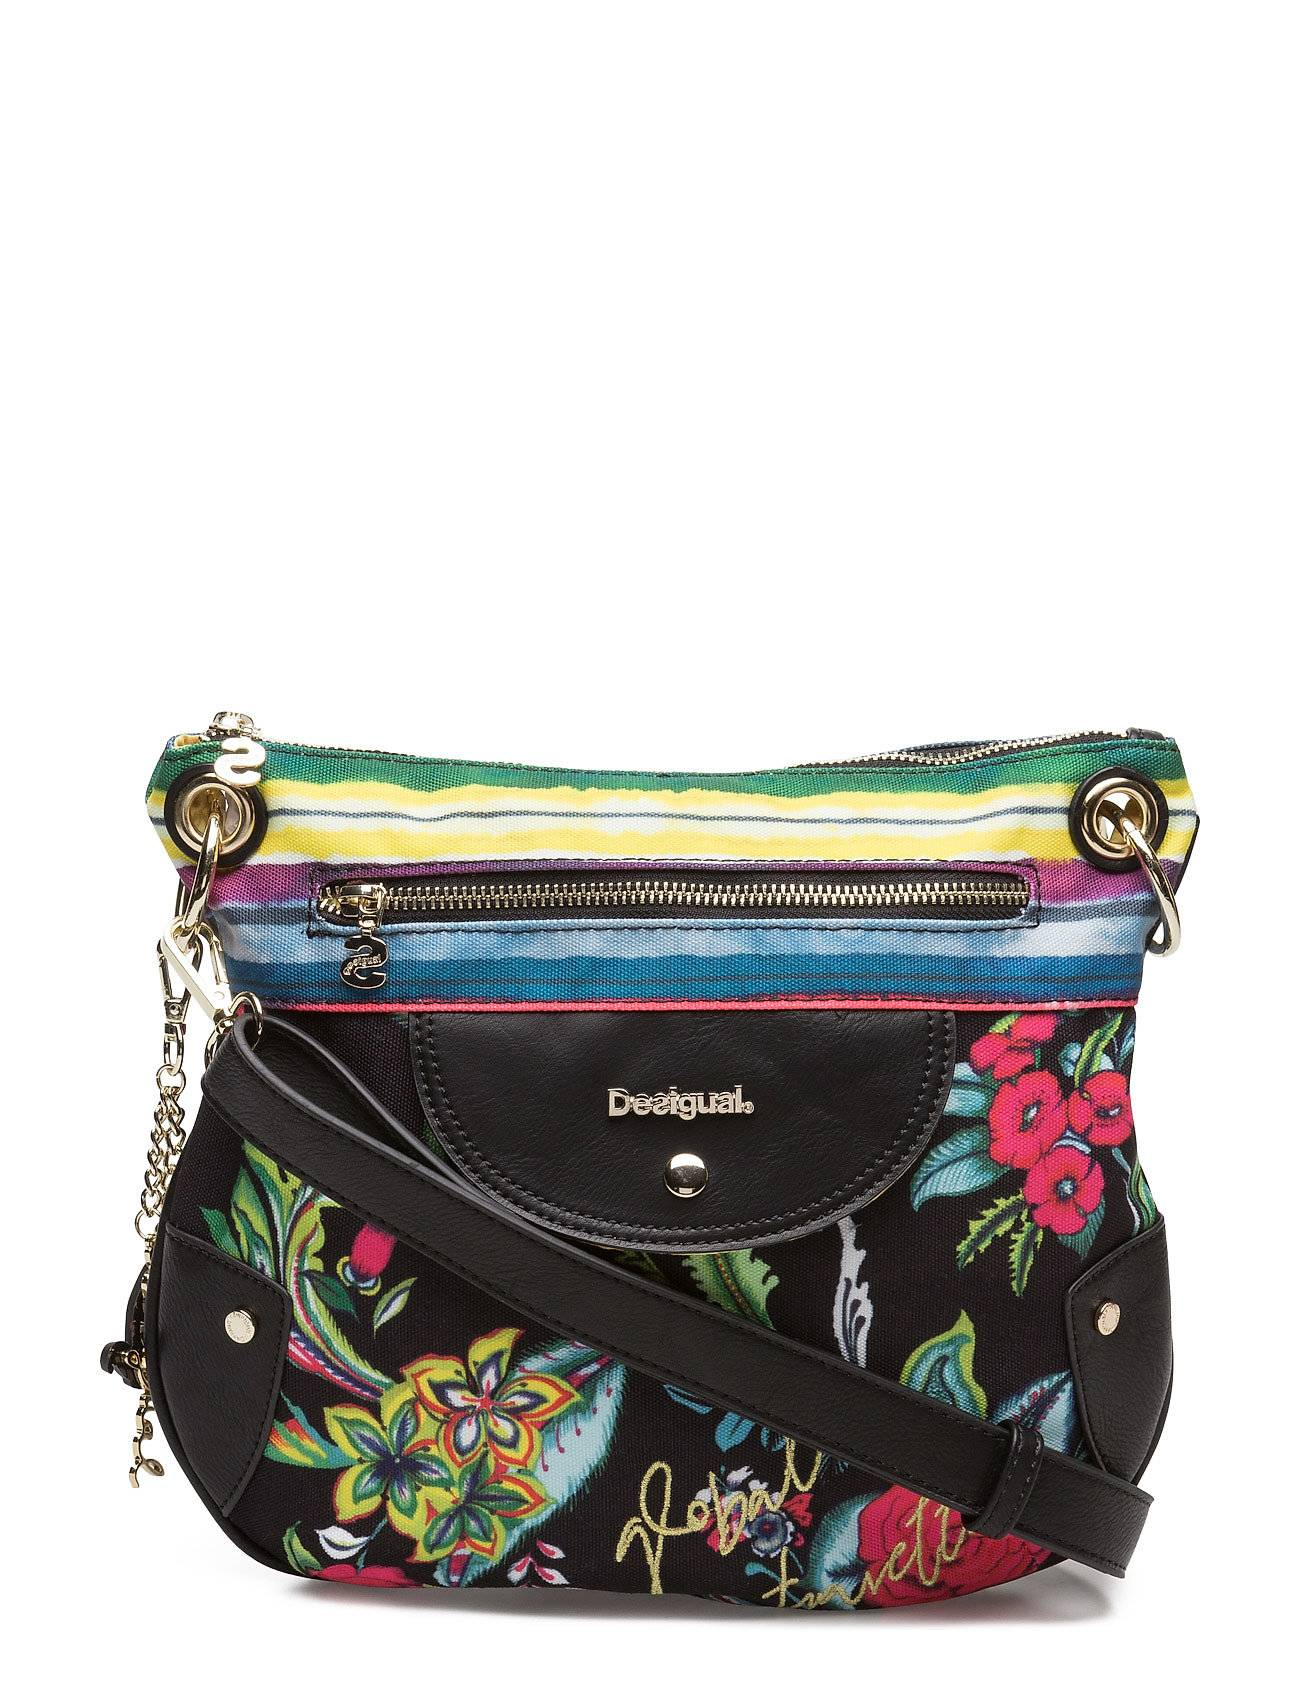 Desigual Accessories Bols Brooklyn CancÚN